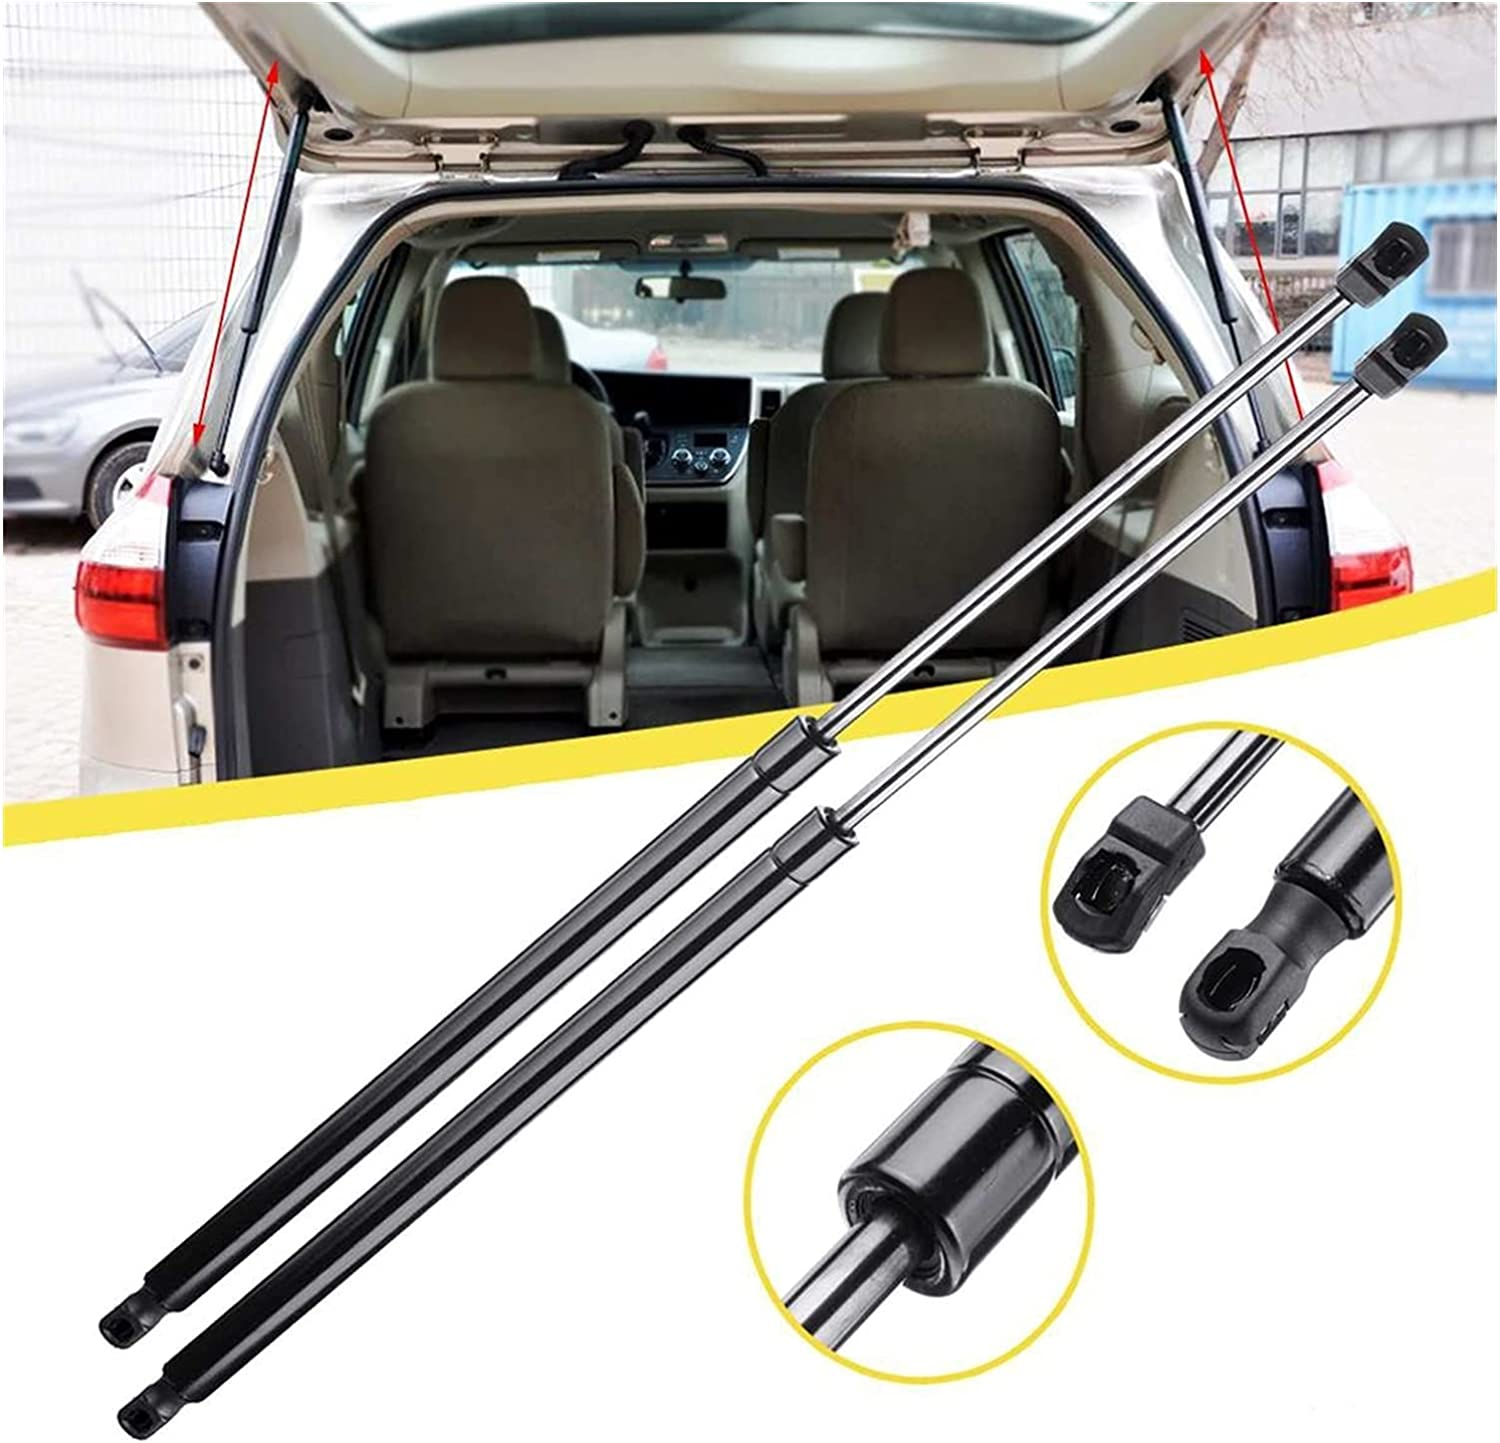 WRDD Lift Support Struts Durable 2 Gas Pcs Direct sale of Dealing full price reduction manufacturer L Car Tailgate